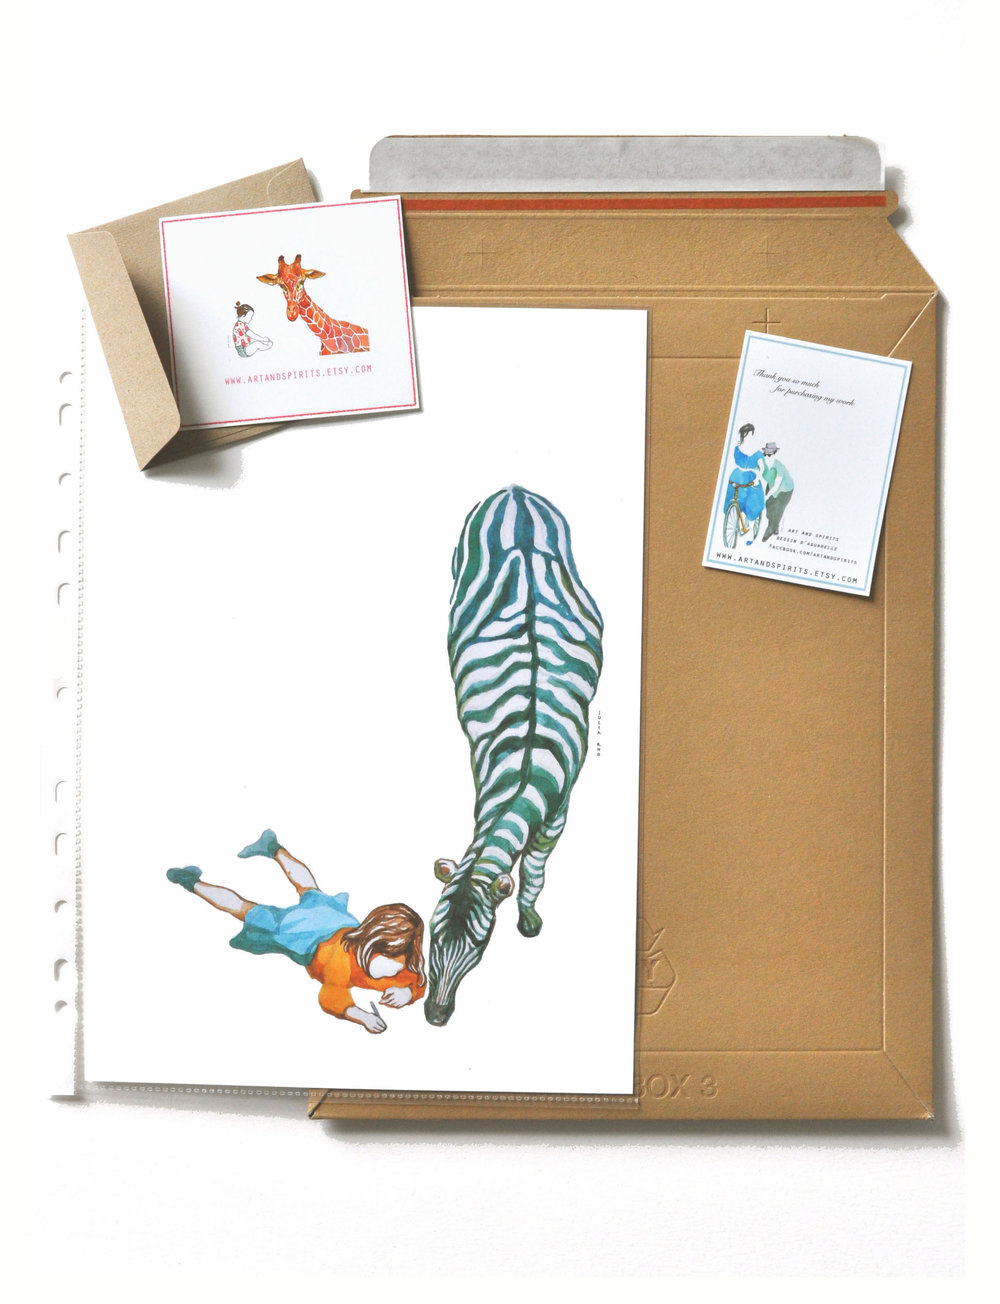 A4 size with rigid envelope w/ plastic protection w/ small cute thanks cards. Format A4 avec enveloppe cartonnée et protection en plastique avec petites cartes.